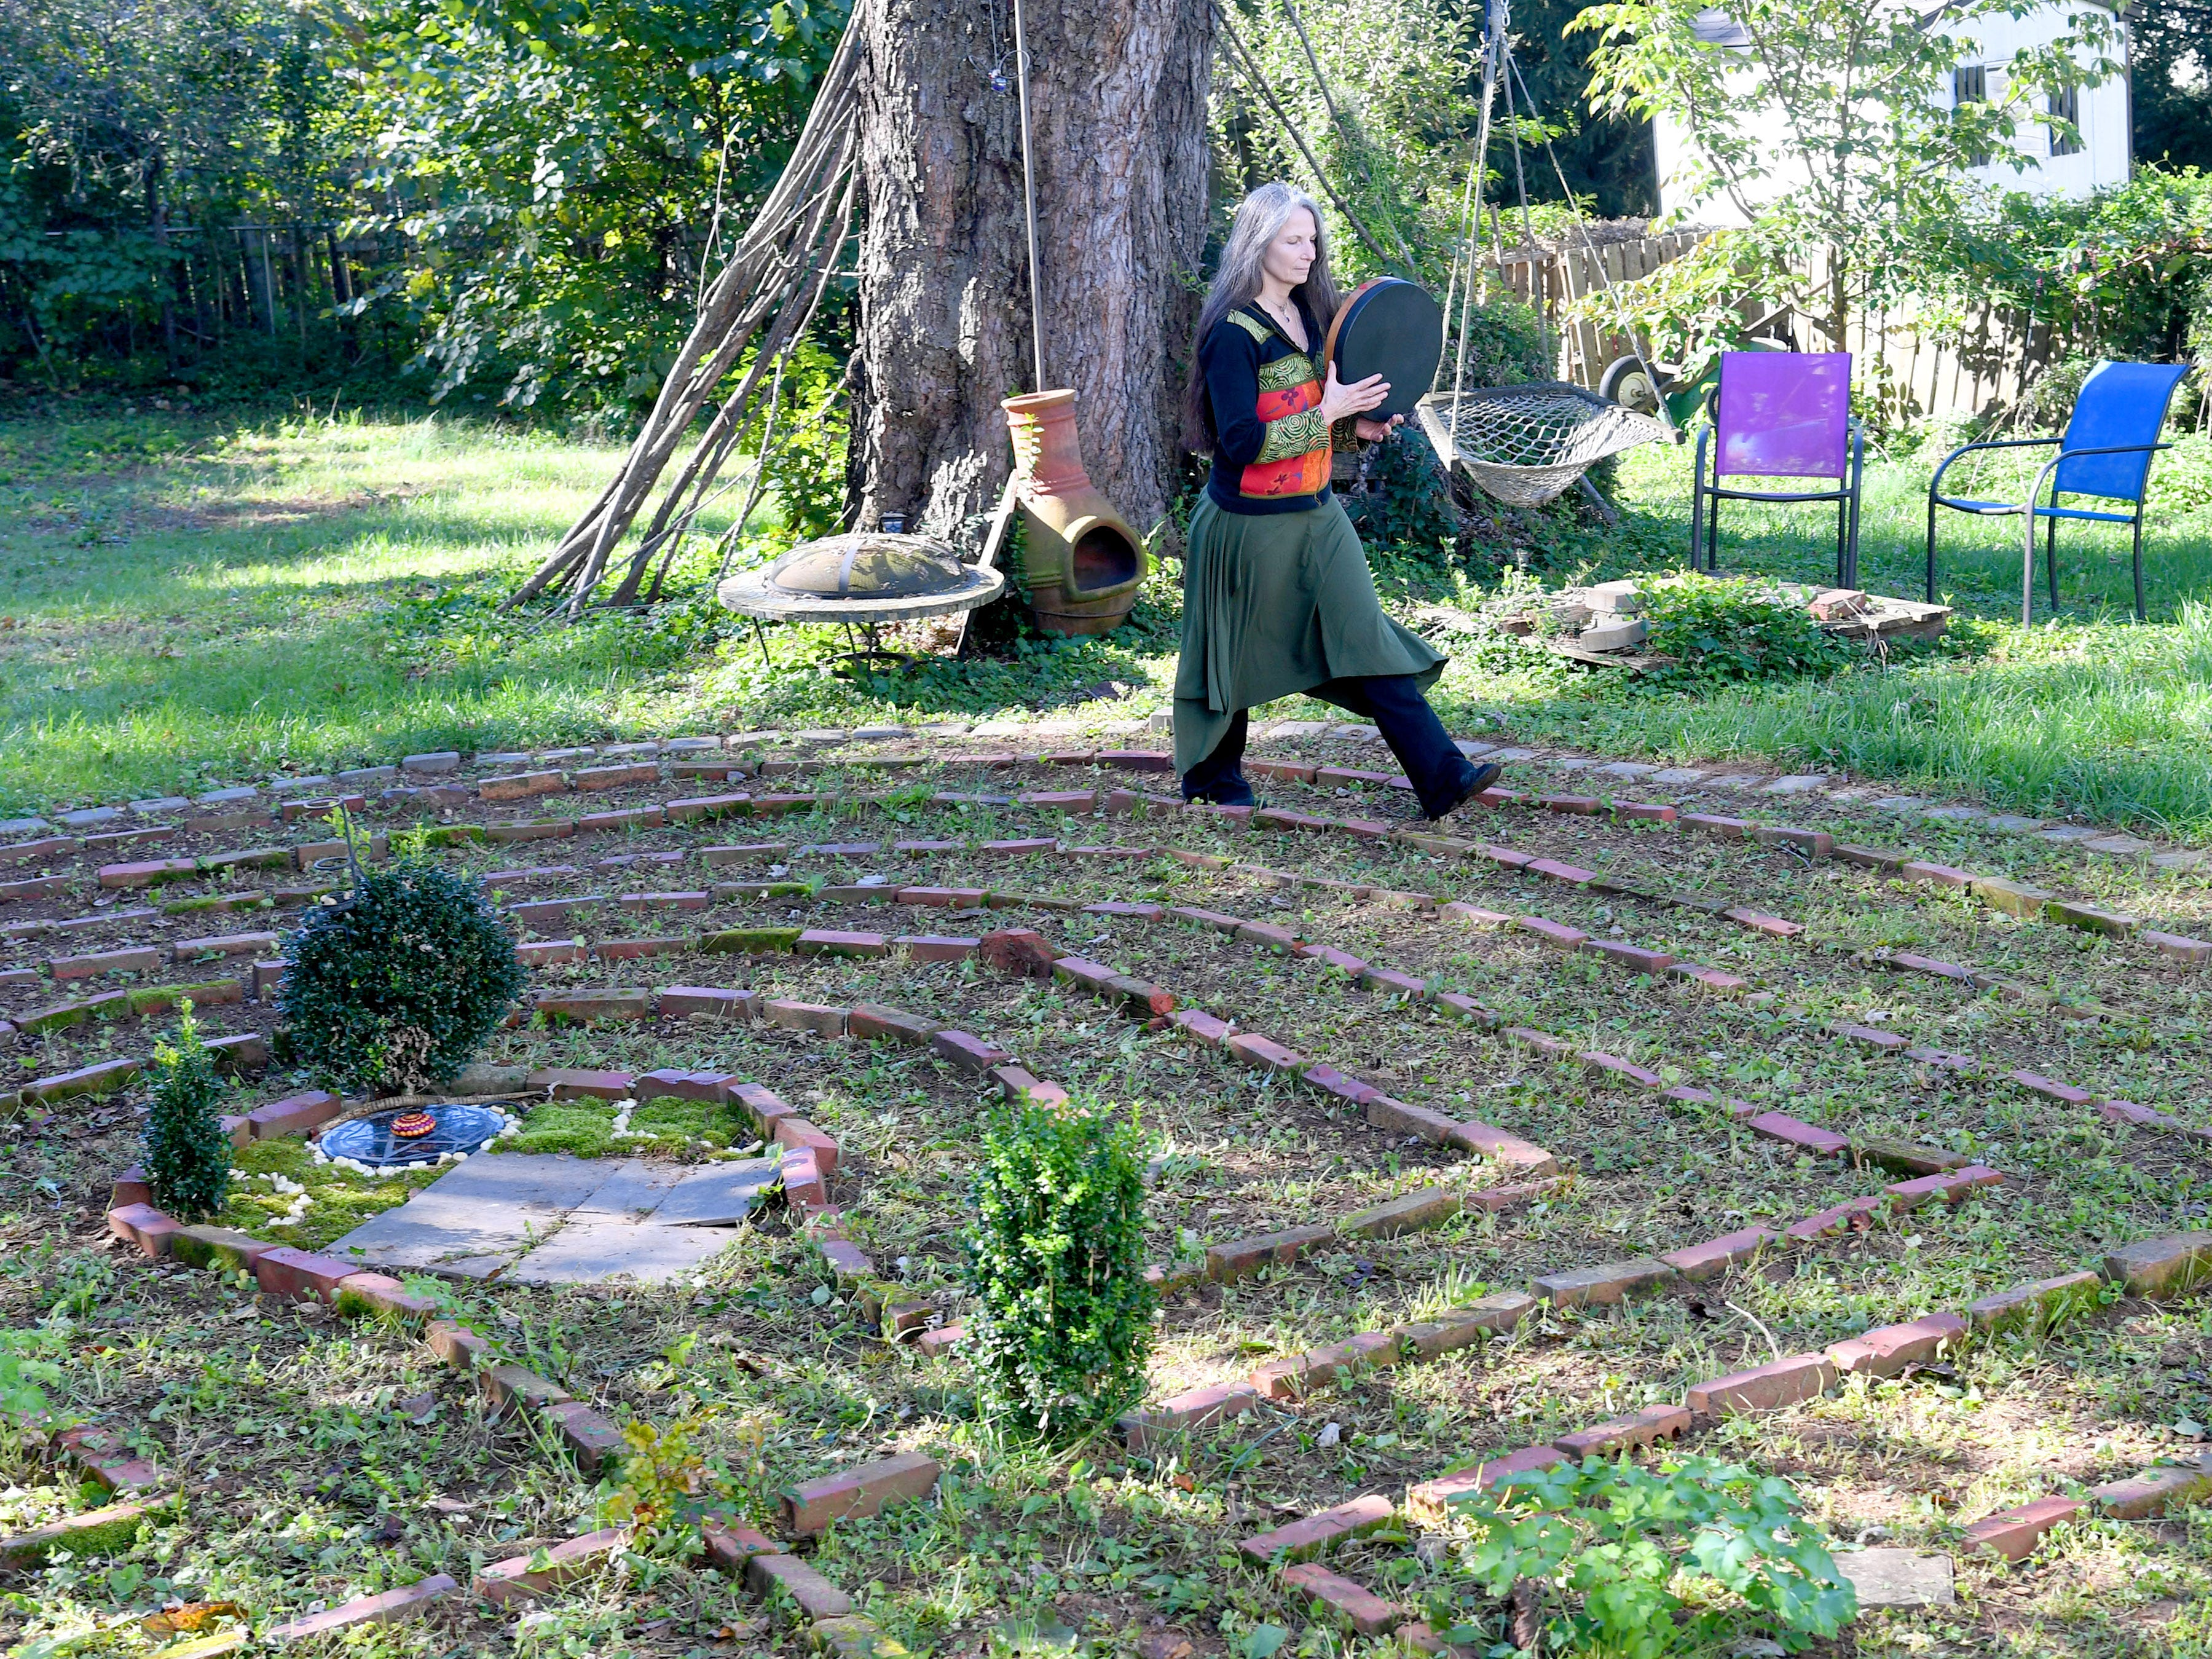 "Willow Kelly, a witch and Sufi, walks the pattern for her return journey after reaching the center of the labyrinth outside her Staunton residence with measured strides in time with her drum on October 19, 2018. ""The labyrinth is a great mystery to me that I continue to explore with wonder,"" she says. ""I walk it daily with few exceptions."""